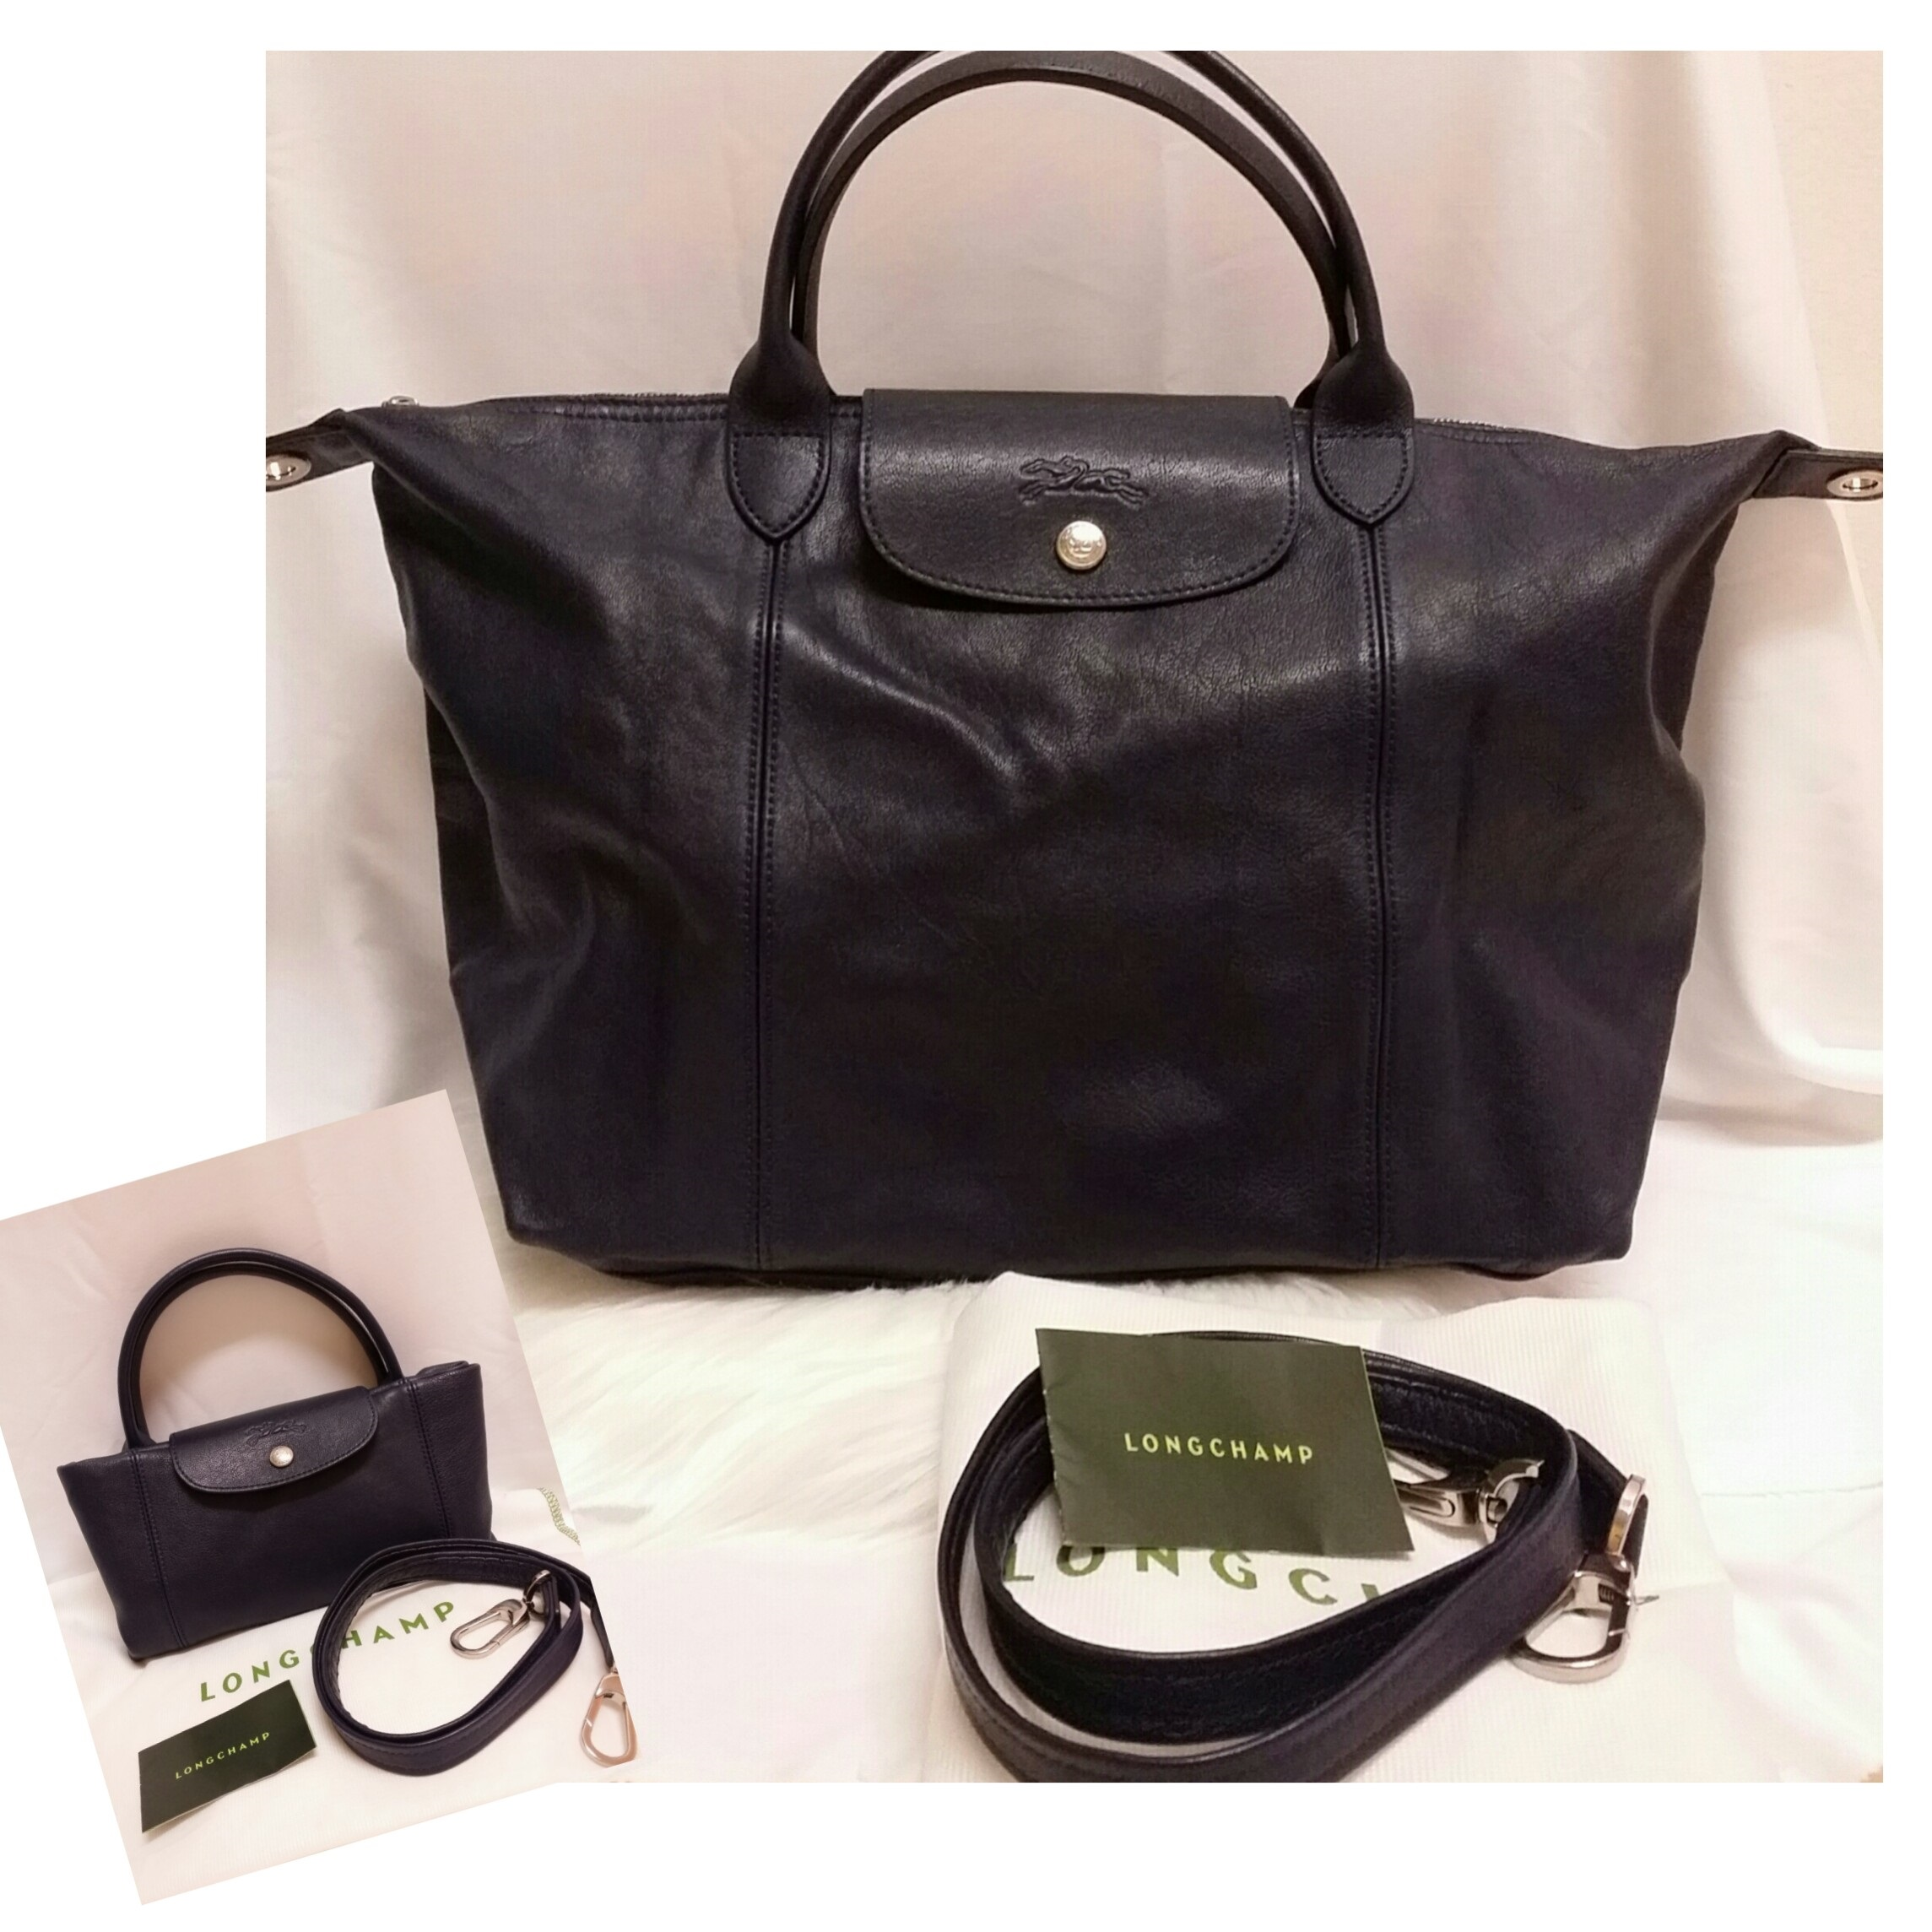 6ec979a22cd5 LONGCHAMP LE PLIAGE CUIR CROSSBODY. 100% Authentic. Condition   9 10 (well  kept). Colour Material   Navy Blue   Leather with Silverstone Hardware.